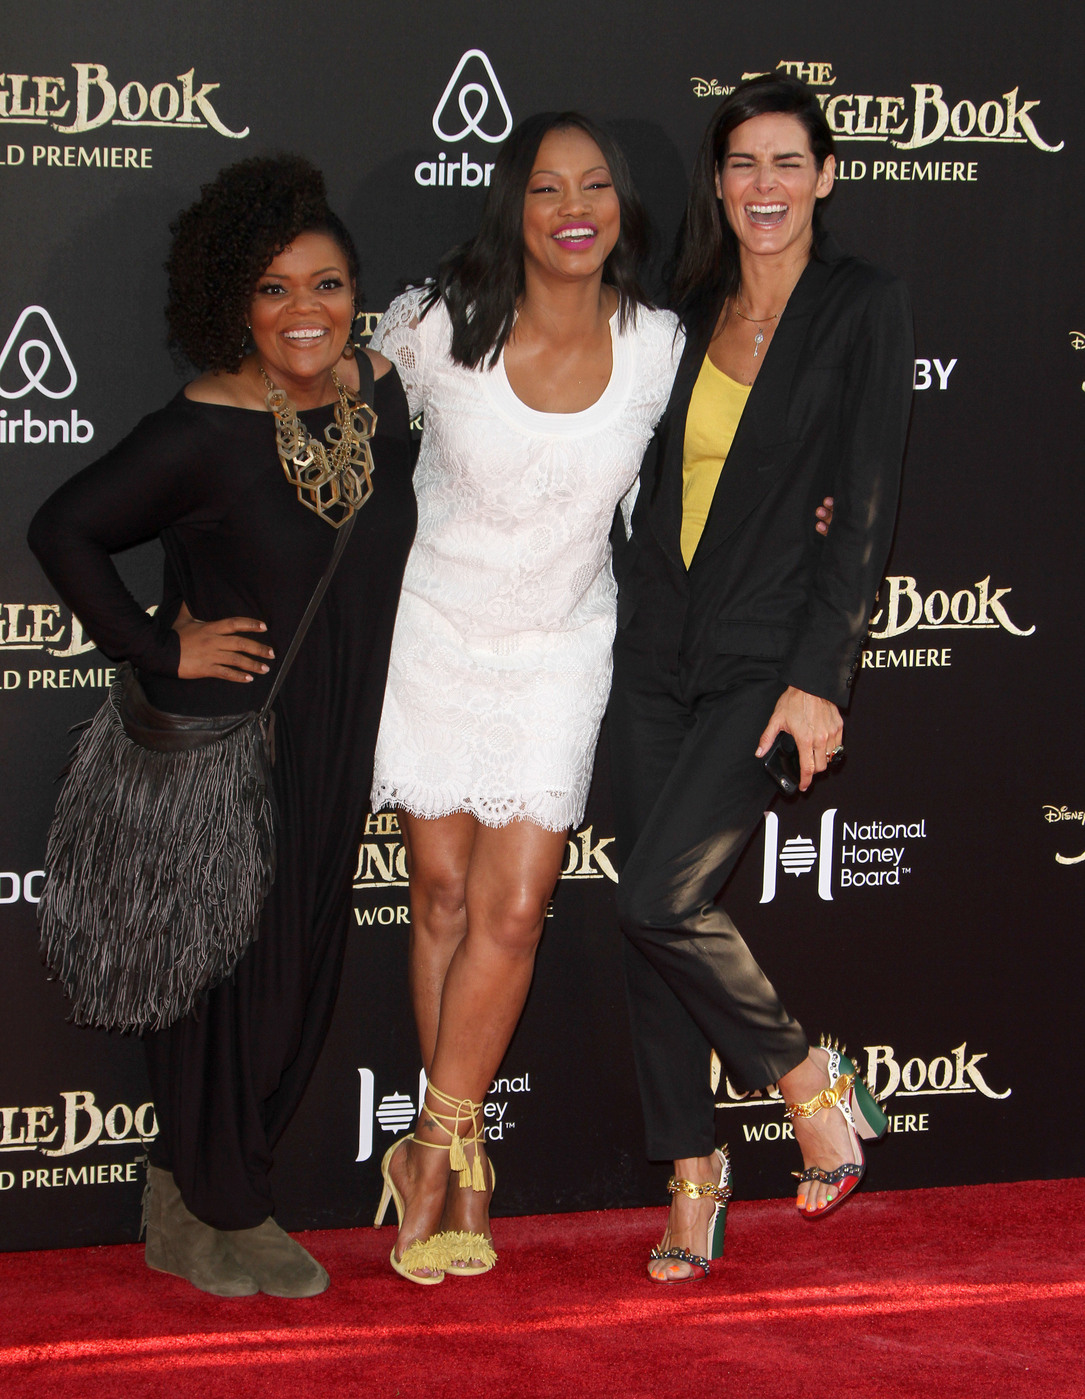 Garcelle Beauvais and Angie Harmon attend the premiere of 'The Jungle Book ' at El Capitan Theater, Hollywood